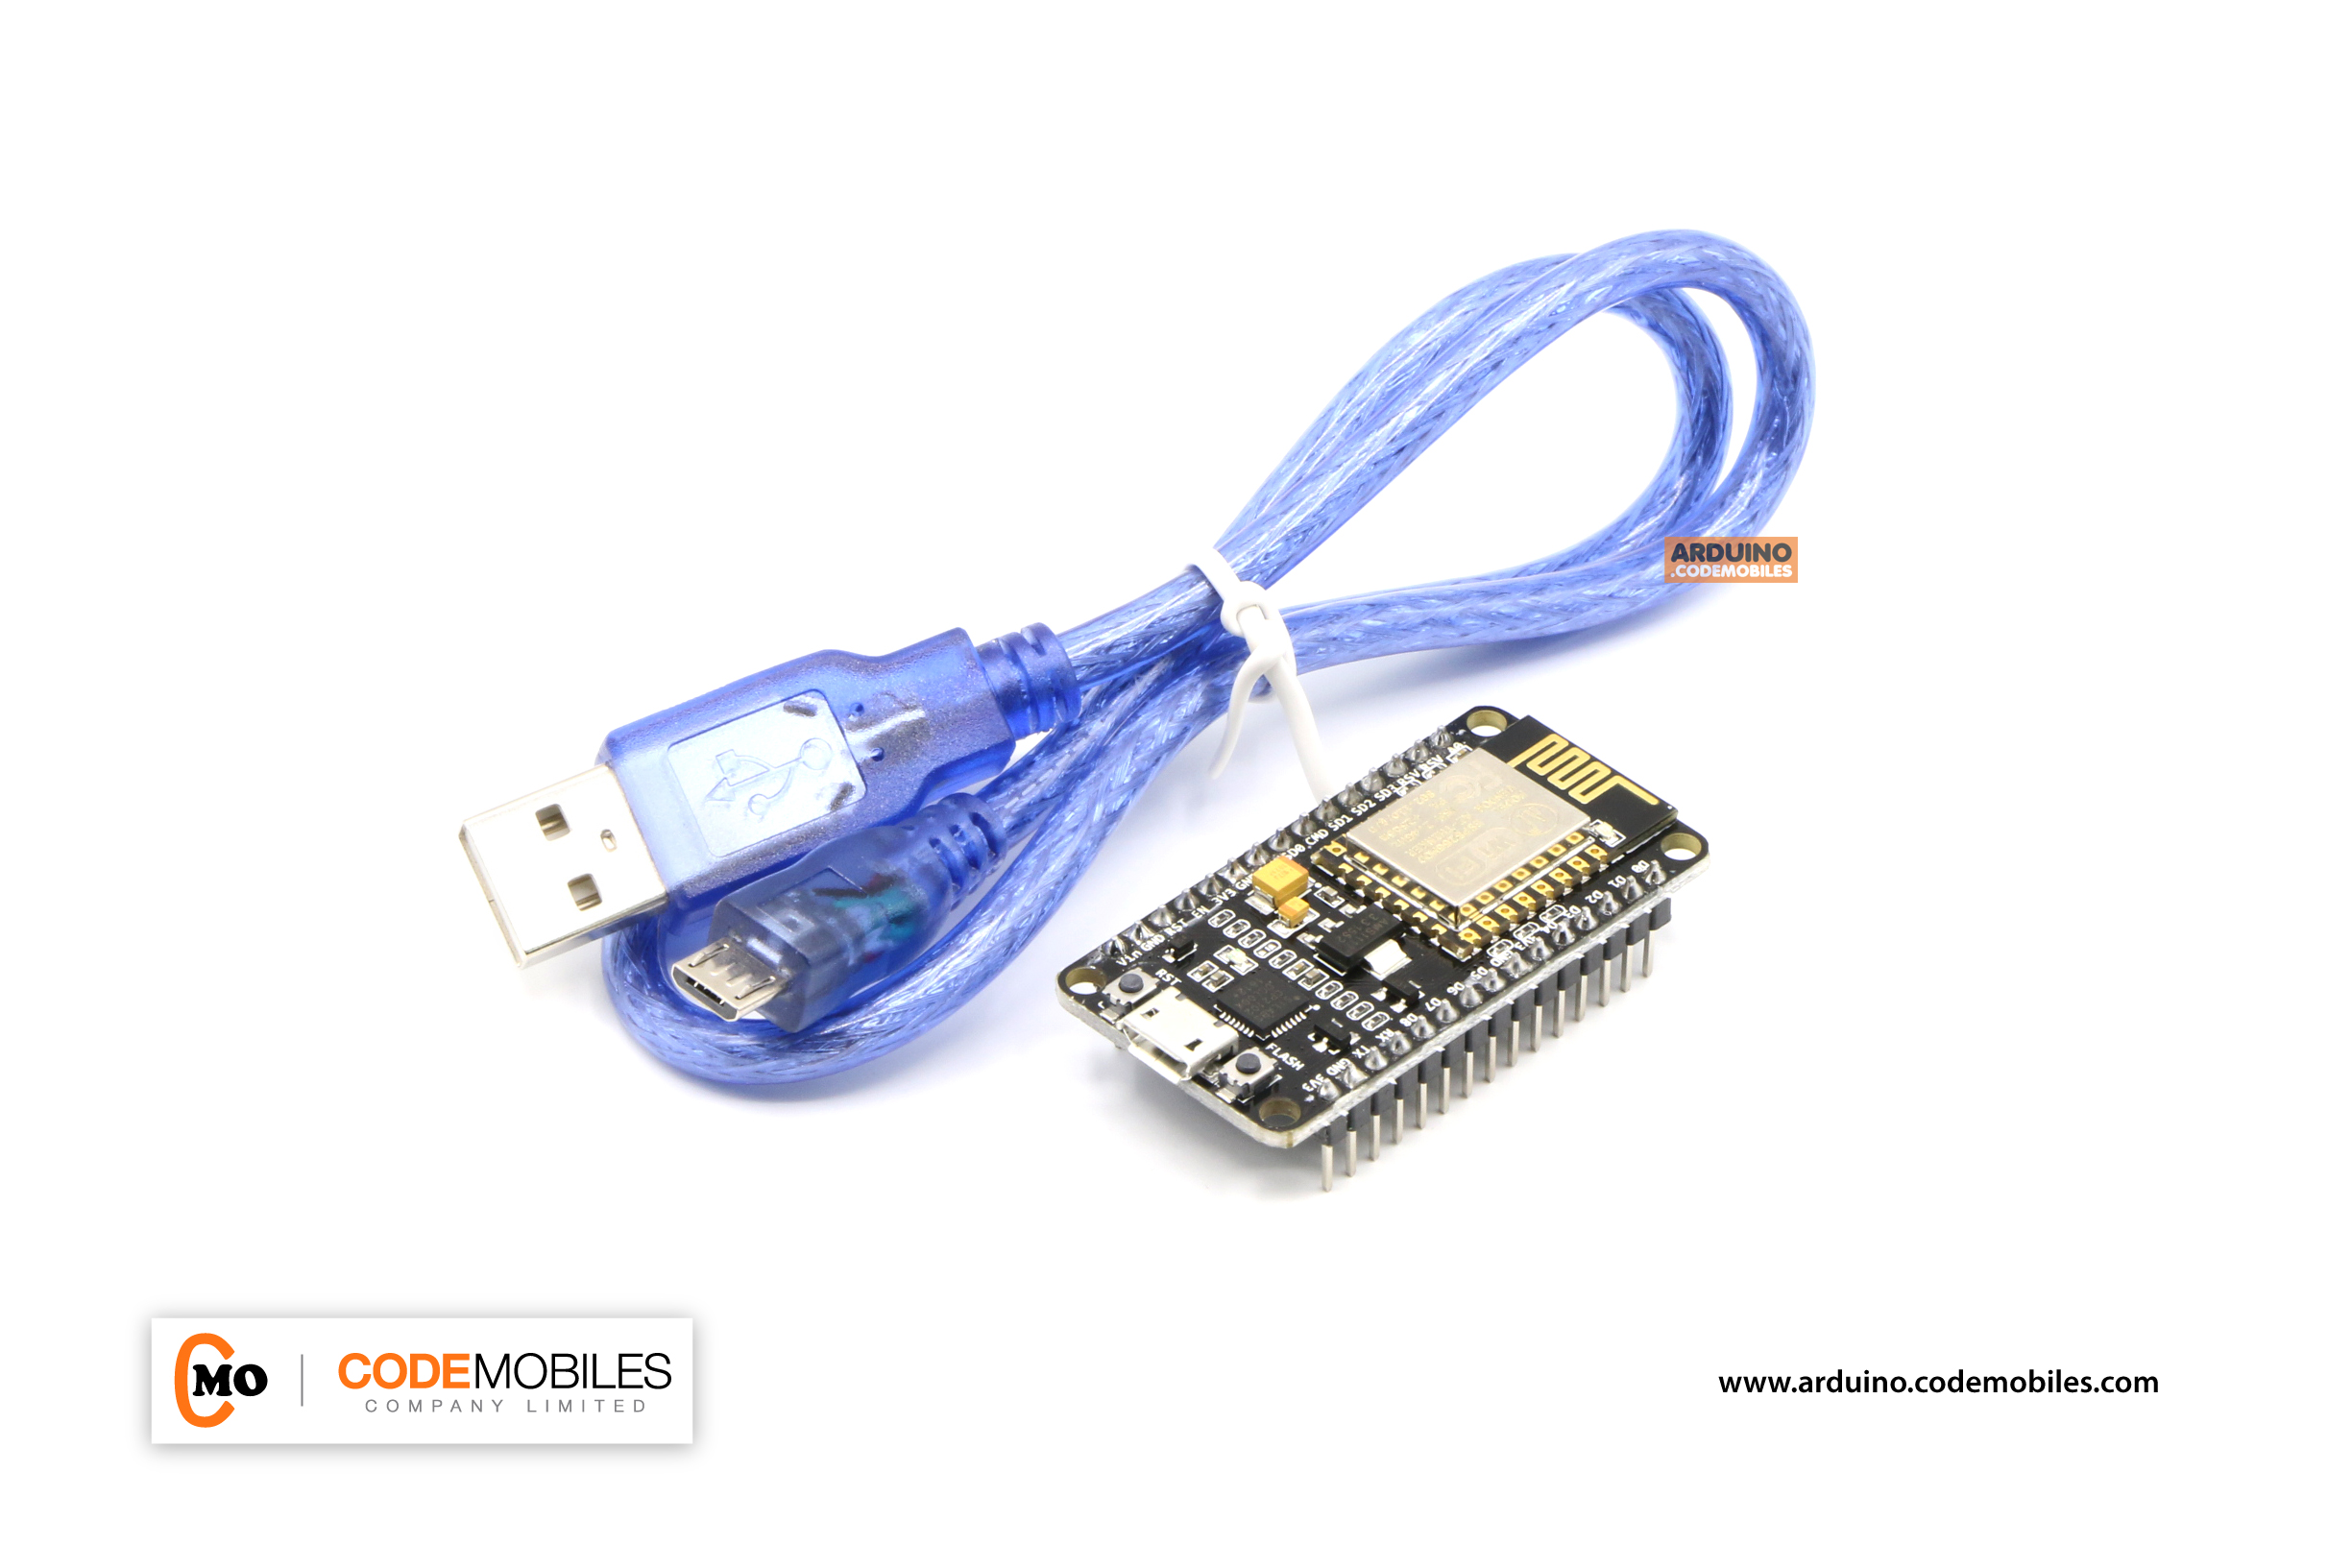 NodeMCU Development Kit V2 แถมสาย USB